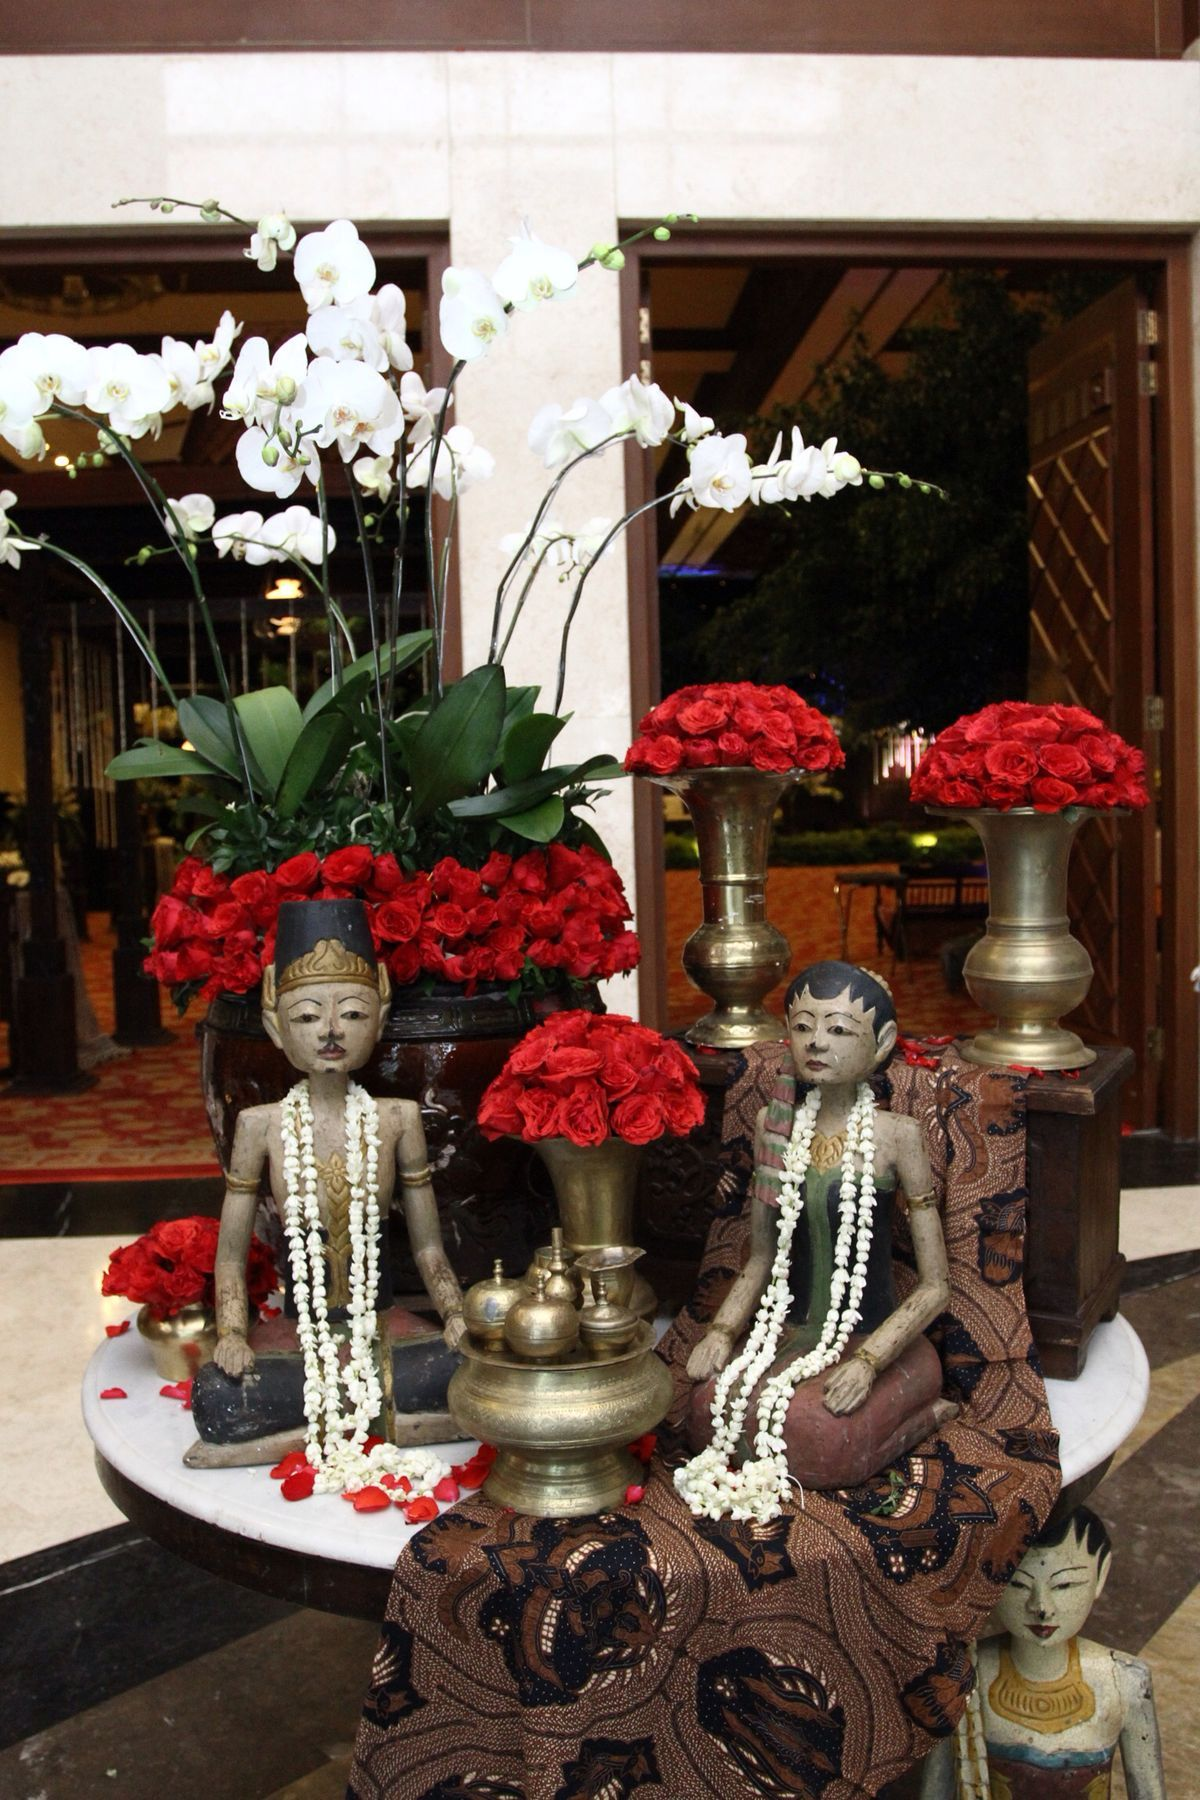 Javanese wedding decor